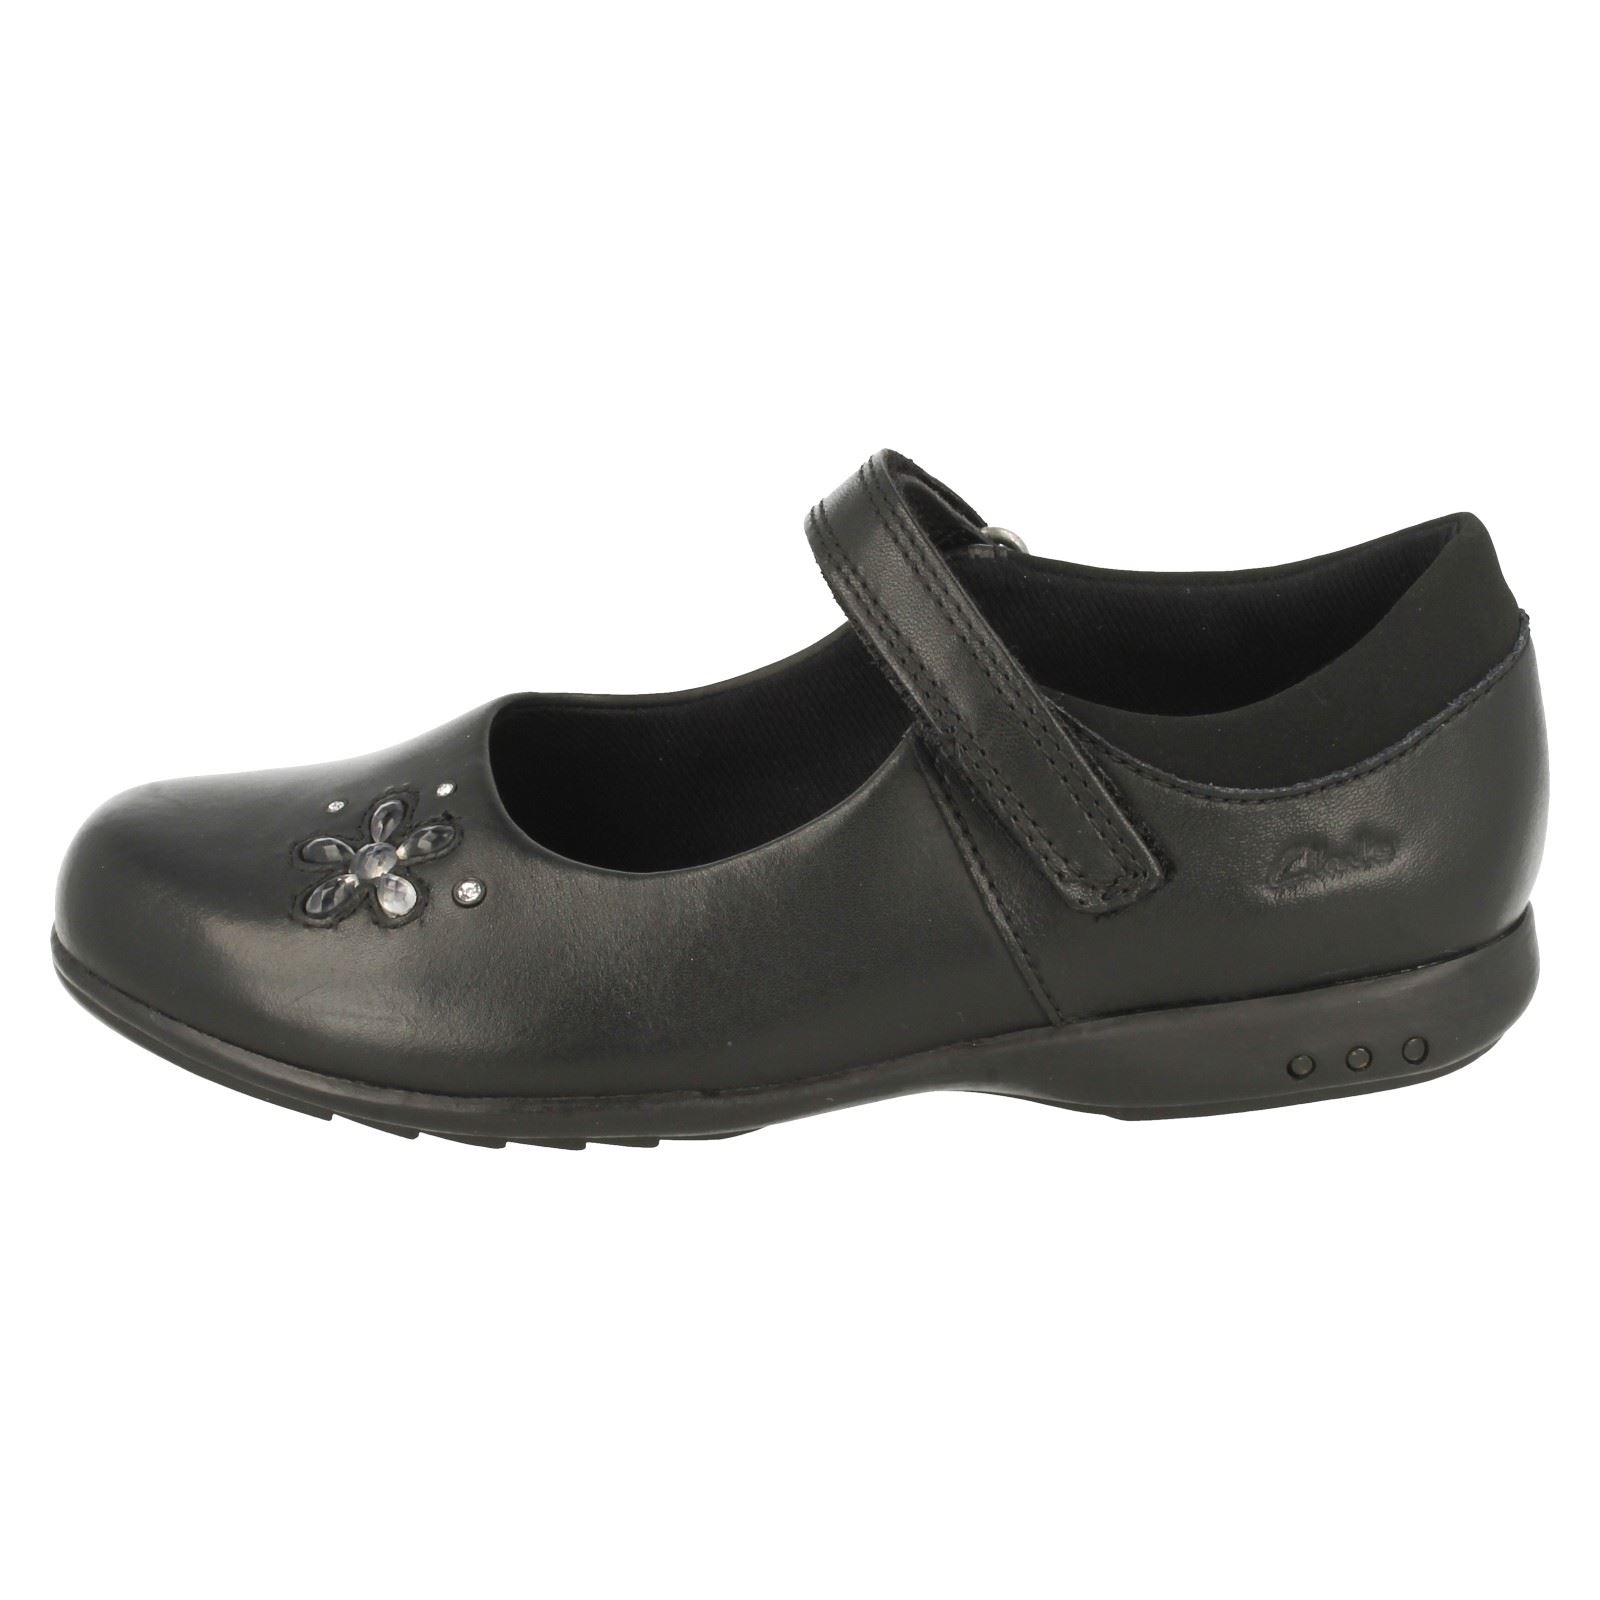 30e207cf2c0 Baby BNIB Clarks Girls Ella Glow Grey Patent Leather Lights First Shoes F  Fitting